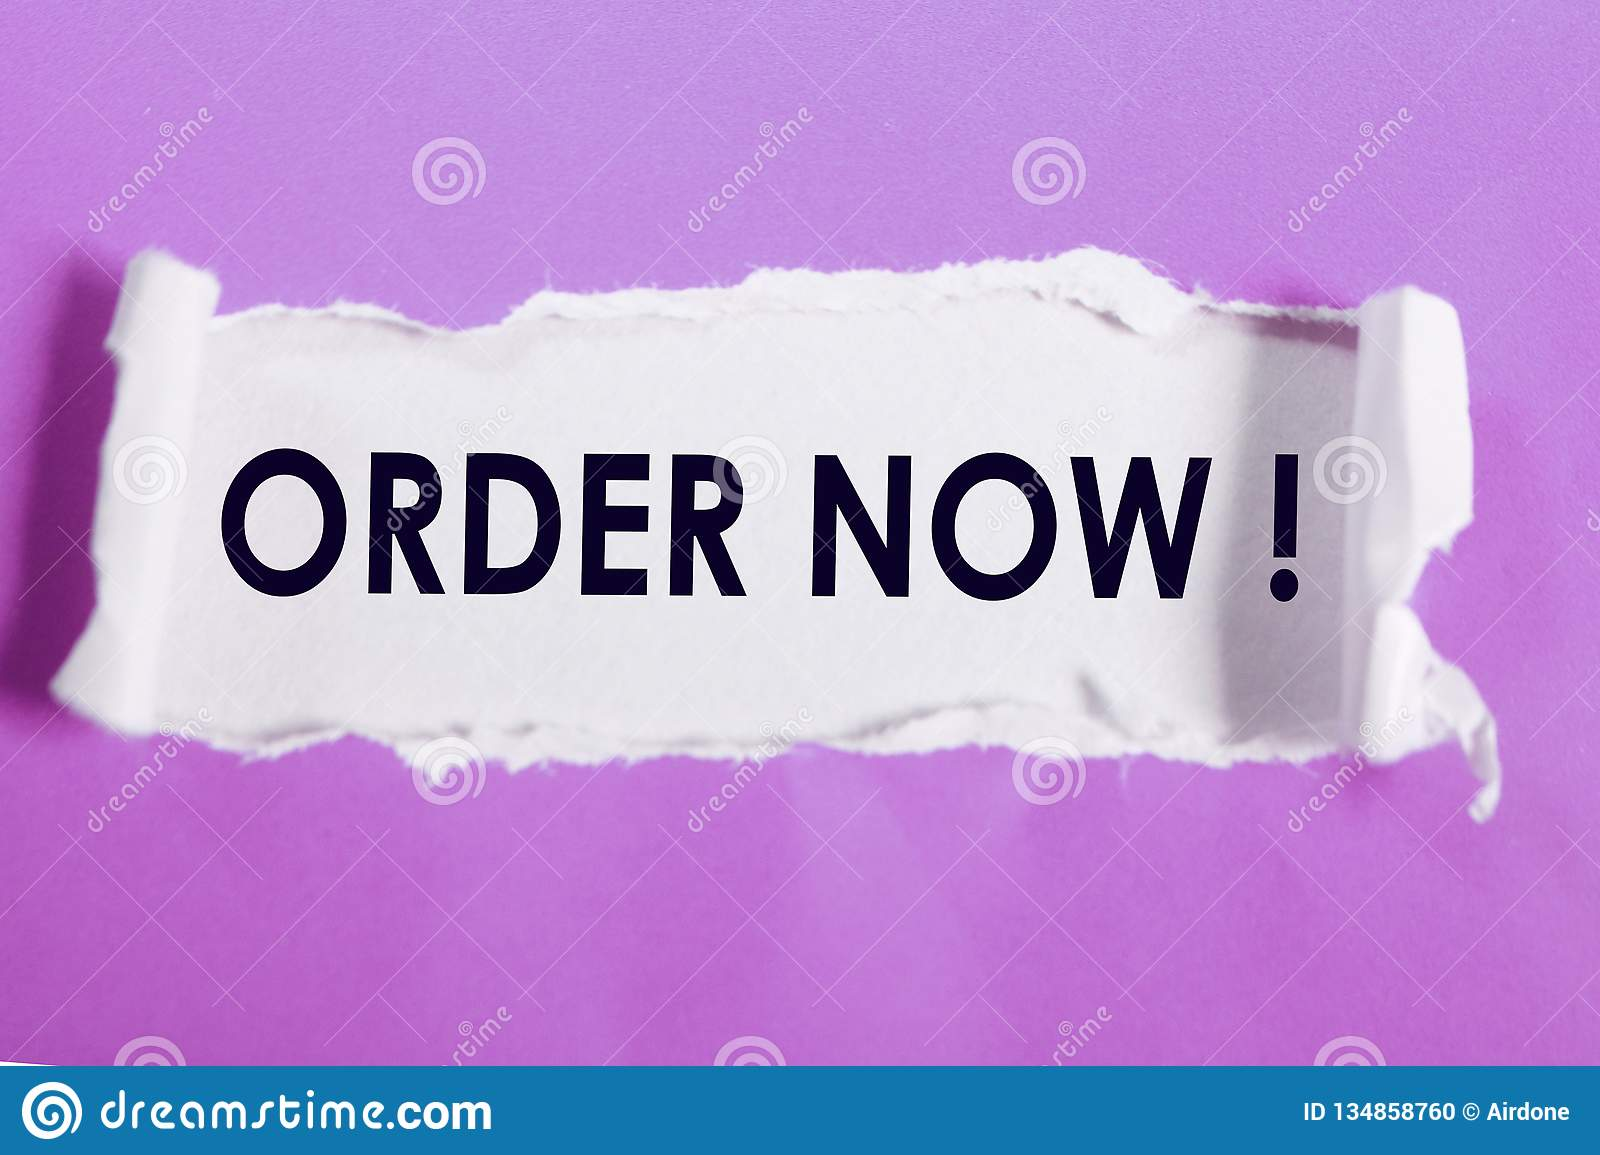 Order Now, Business Marketing Words Quotes Concept Stock